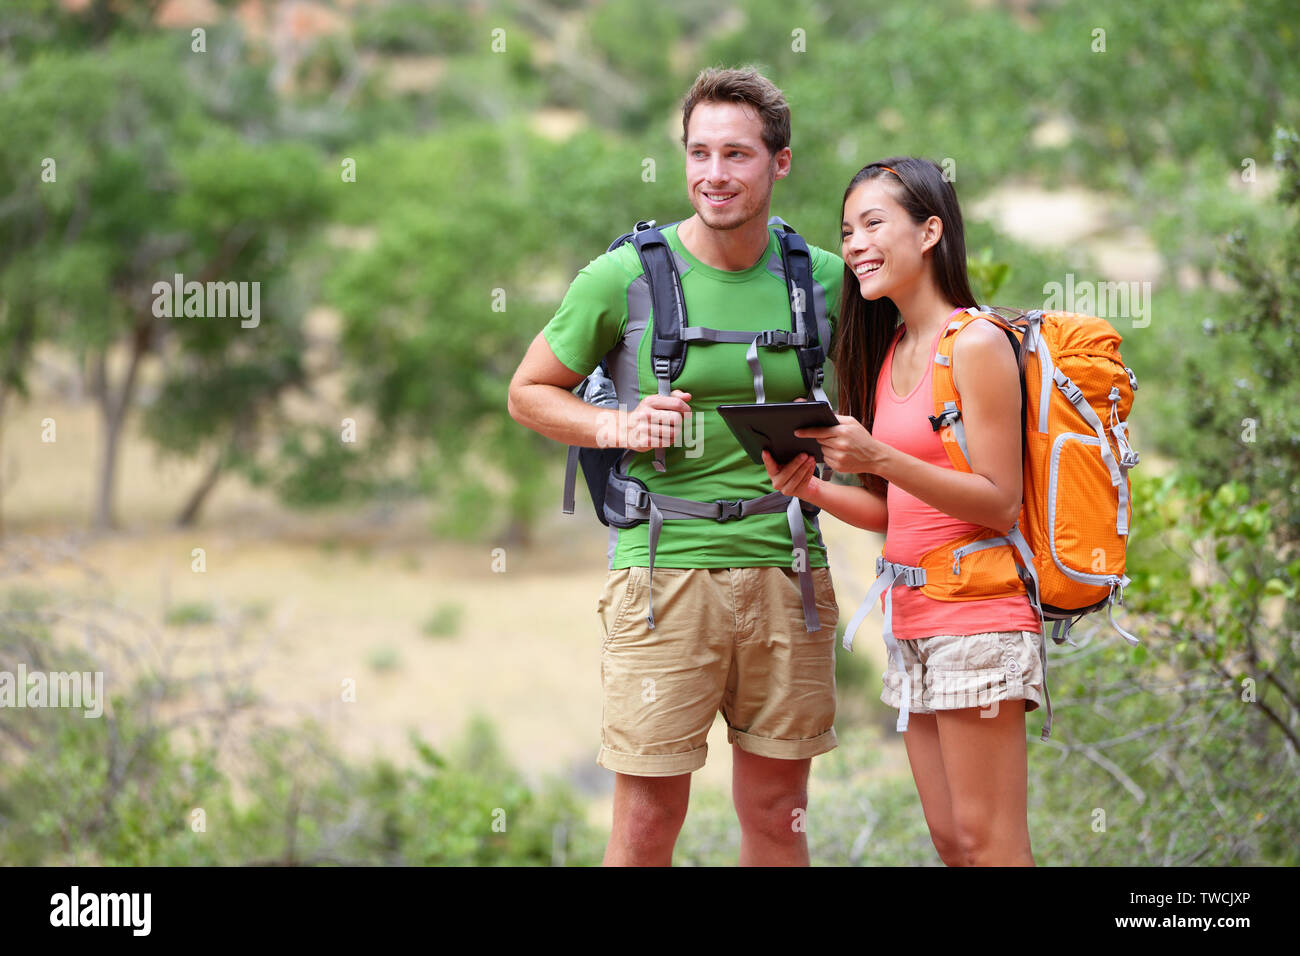 Tablet computer - couple hiking using internet and tablet computer pc guide book app on hike in Zion National Park. Interracial active hiker couple, Asian woman, caucasian man trekking in Utah, USA. - Stock Image